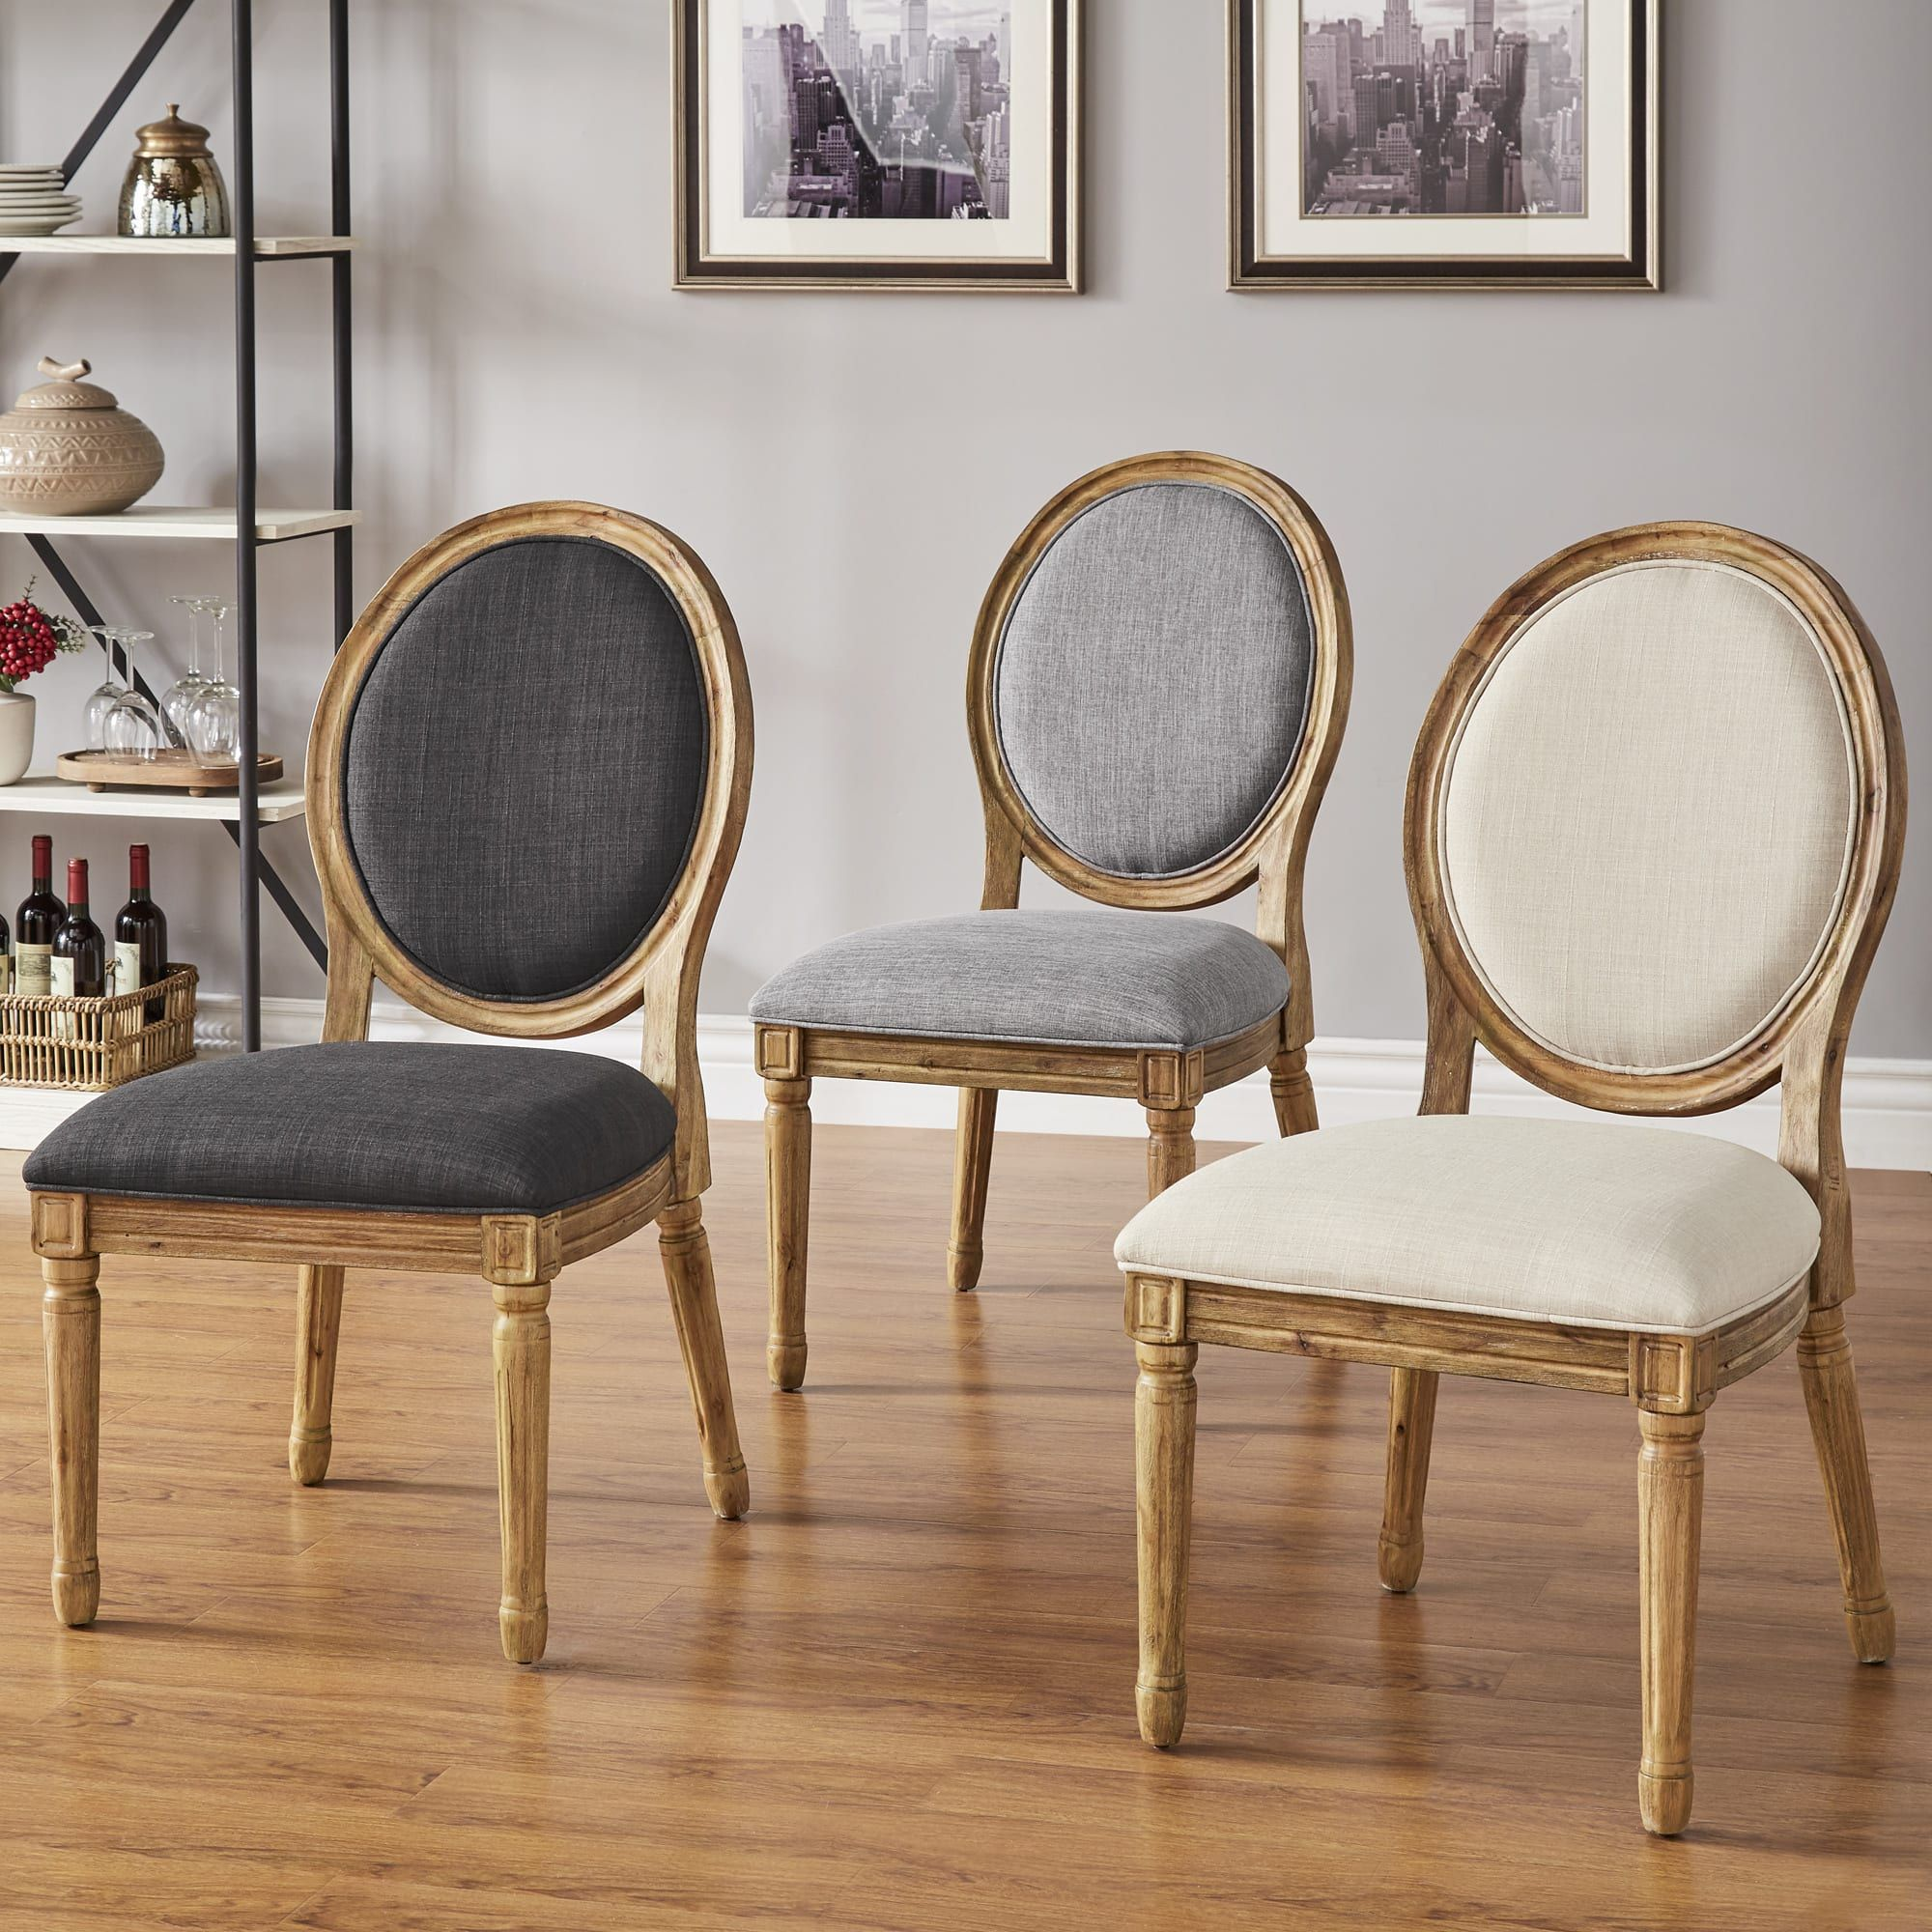 Buy Dining Room Furniture Online: Deana Round Back Linen And Pine Wood Dining Chairs (Set Of